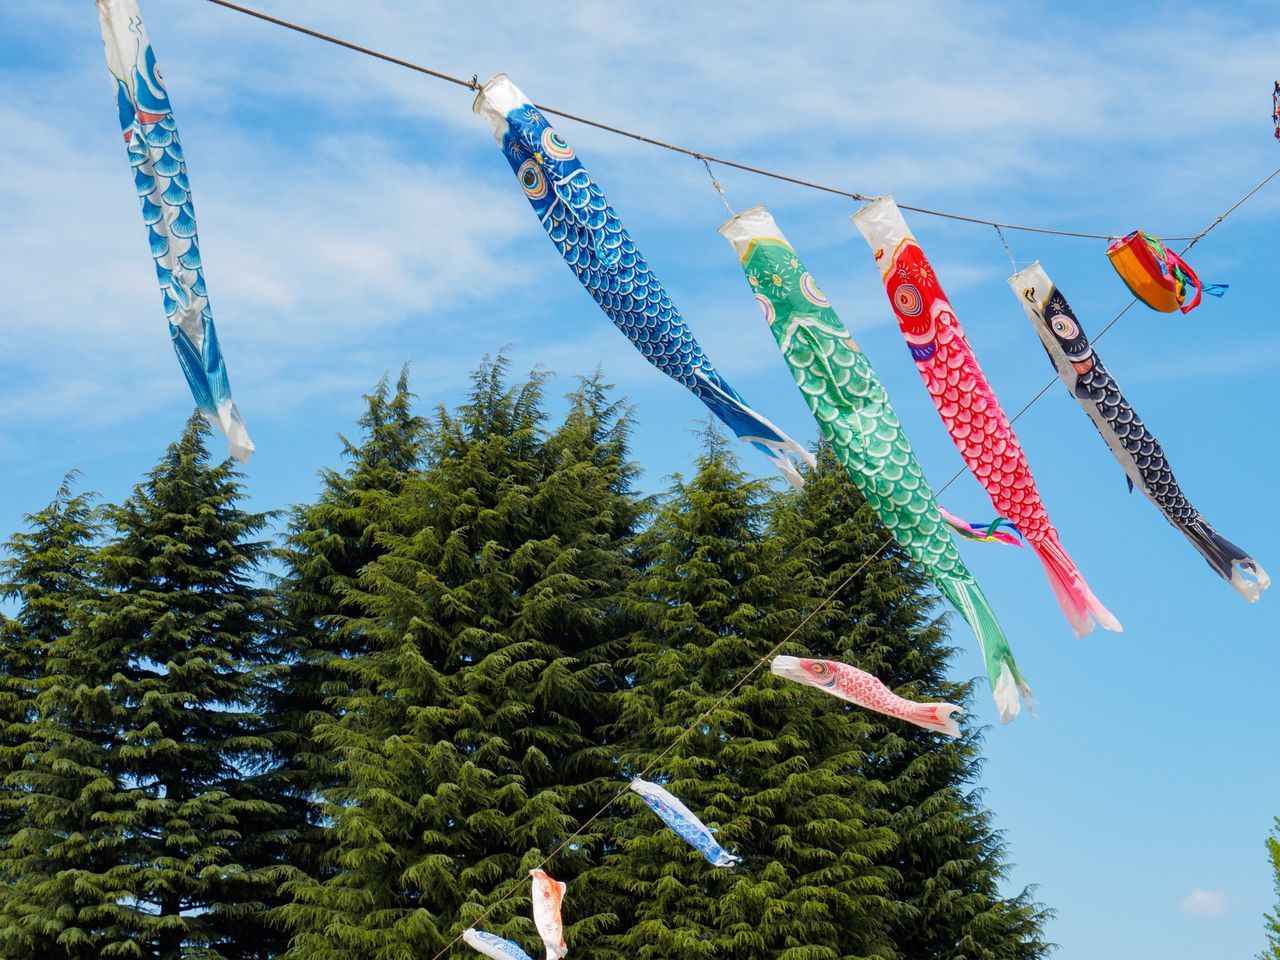 Celebration Hanging Sky Celebration Event Low Angle View Streamer Cultures Tree Carp Outdoors Event Multi Colored Day Holiday - Event Nature No People Close-up Japan Photography Tokyo Street Photography Springtime Swimming